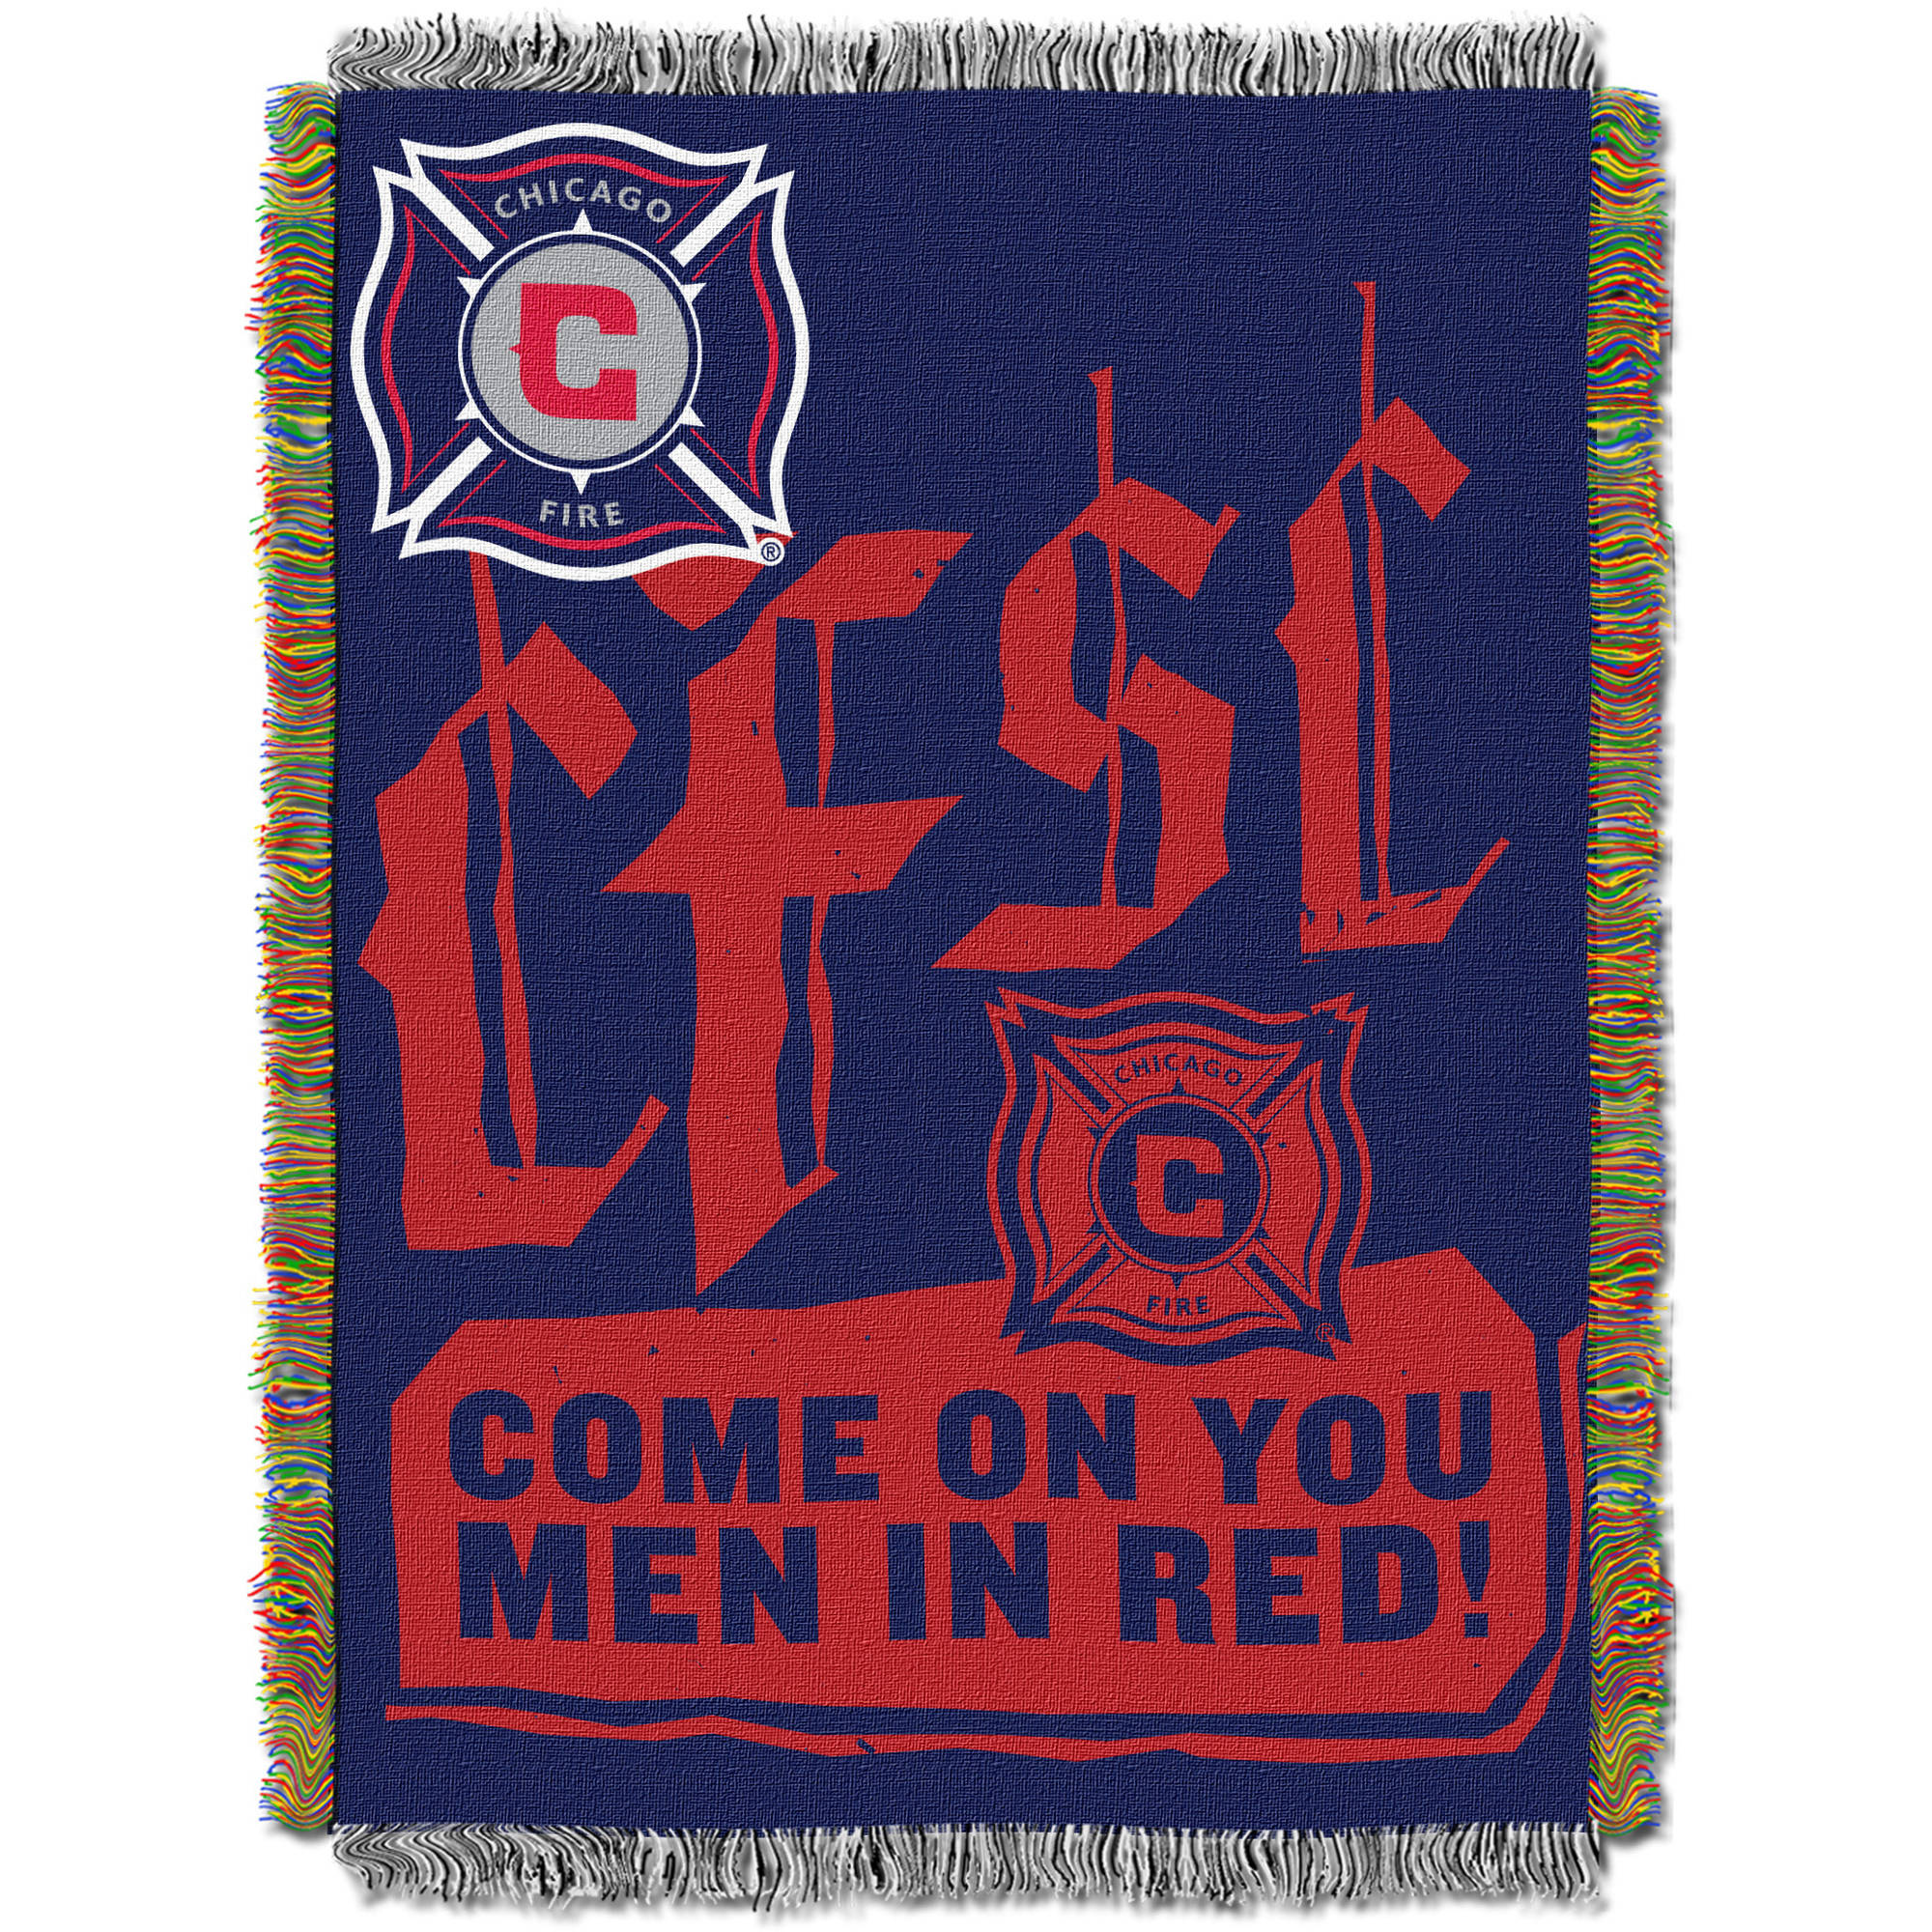 "MLS Chicago Fire Handmade 48"" x 60"" Woven Tapestry Throw"